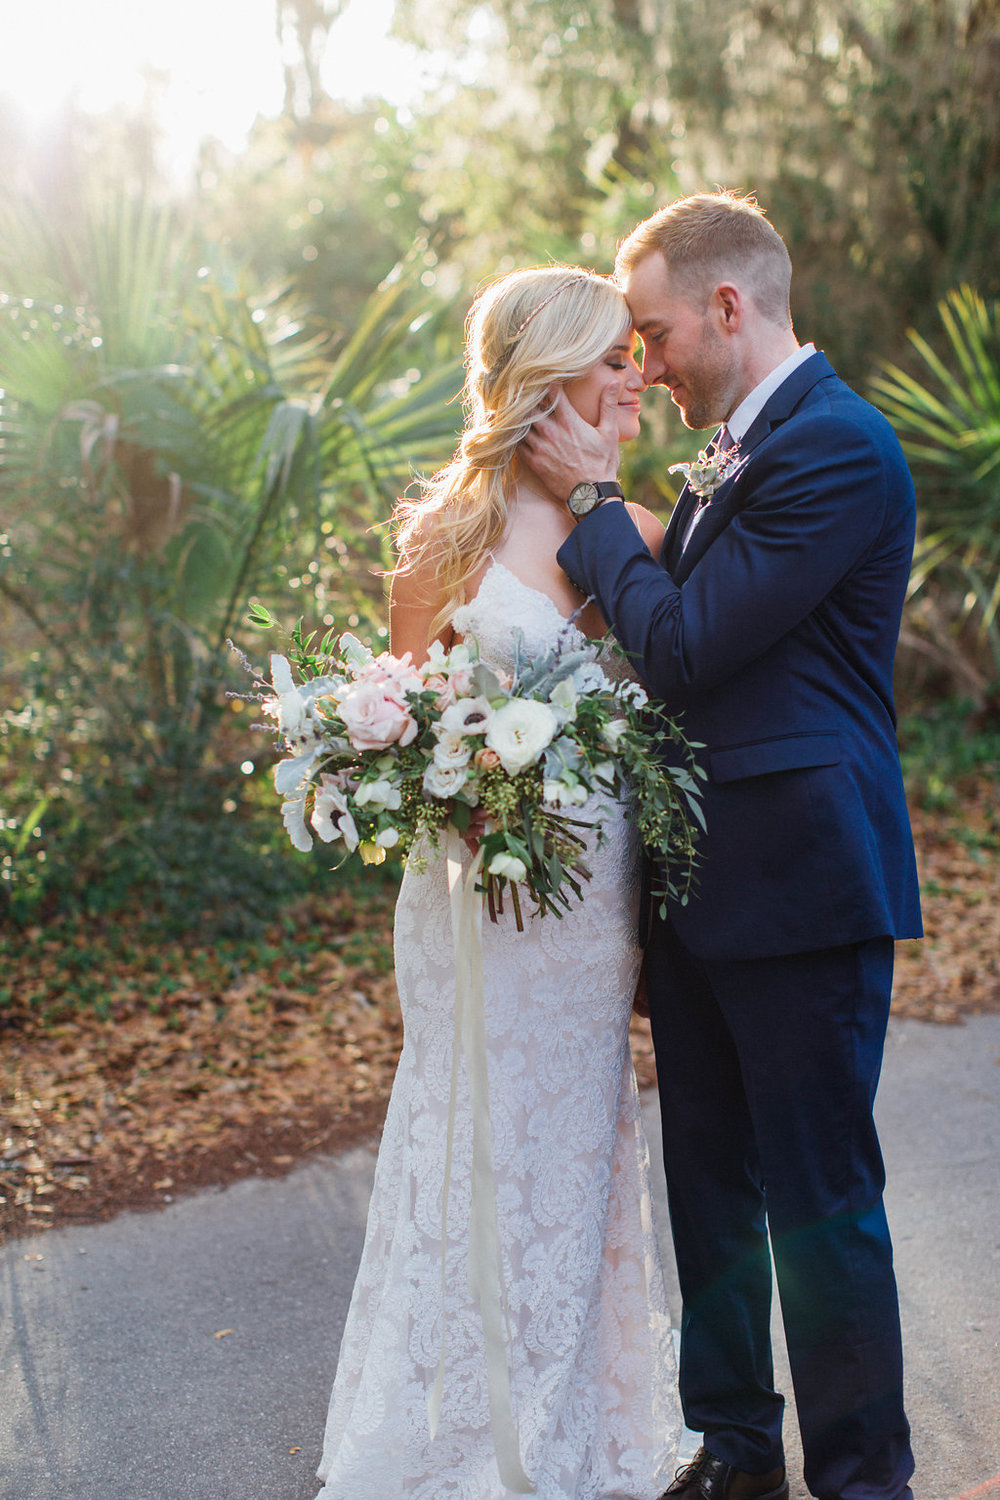 ivory-and-beau-bridal-boutique-christina-karst-photography-the-ribault-club-jacksonville-florida-wedding-jacksonville-wedding-planner-16.jpg